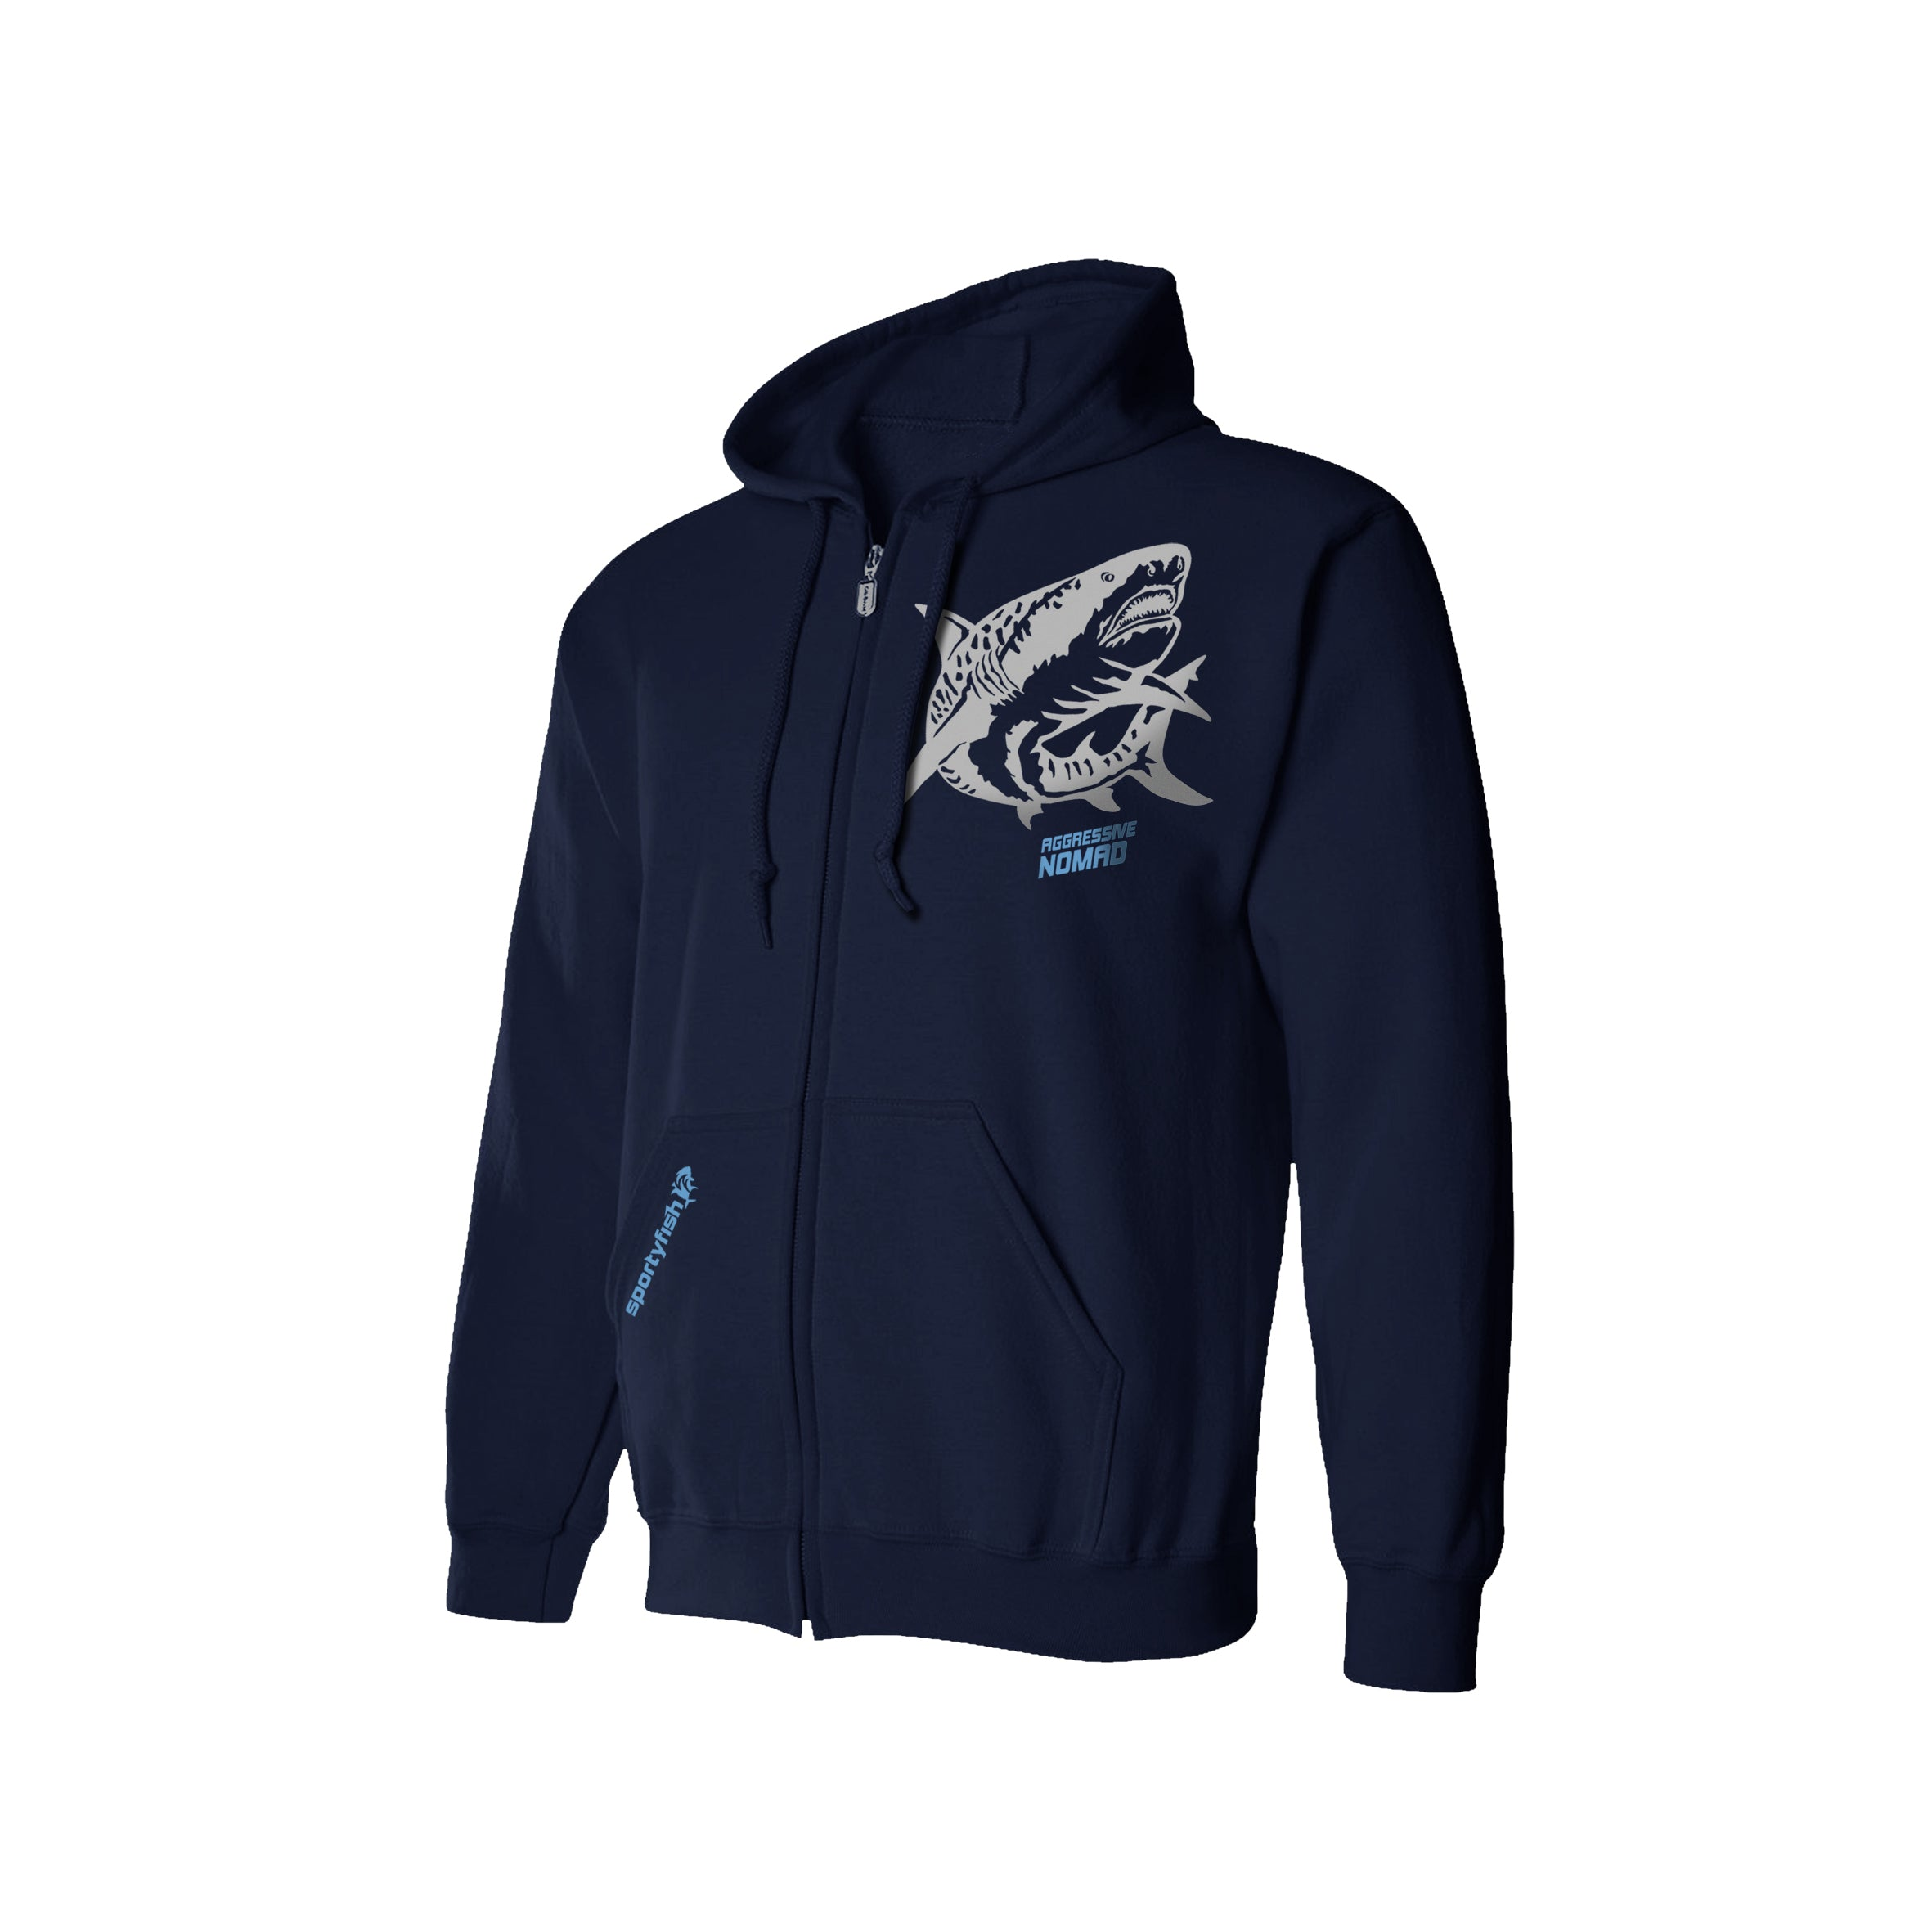 SportyFish Shark Crusader Series Hoodie - Tiger Shark